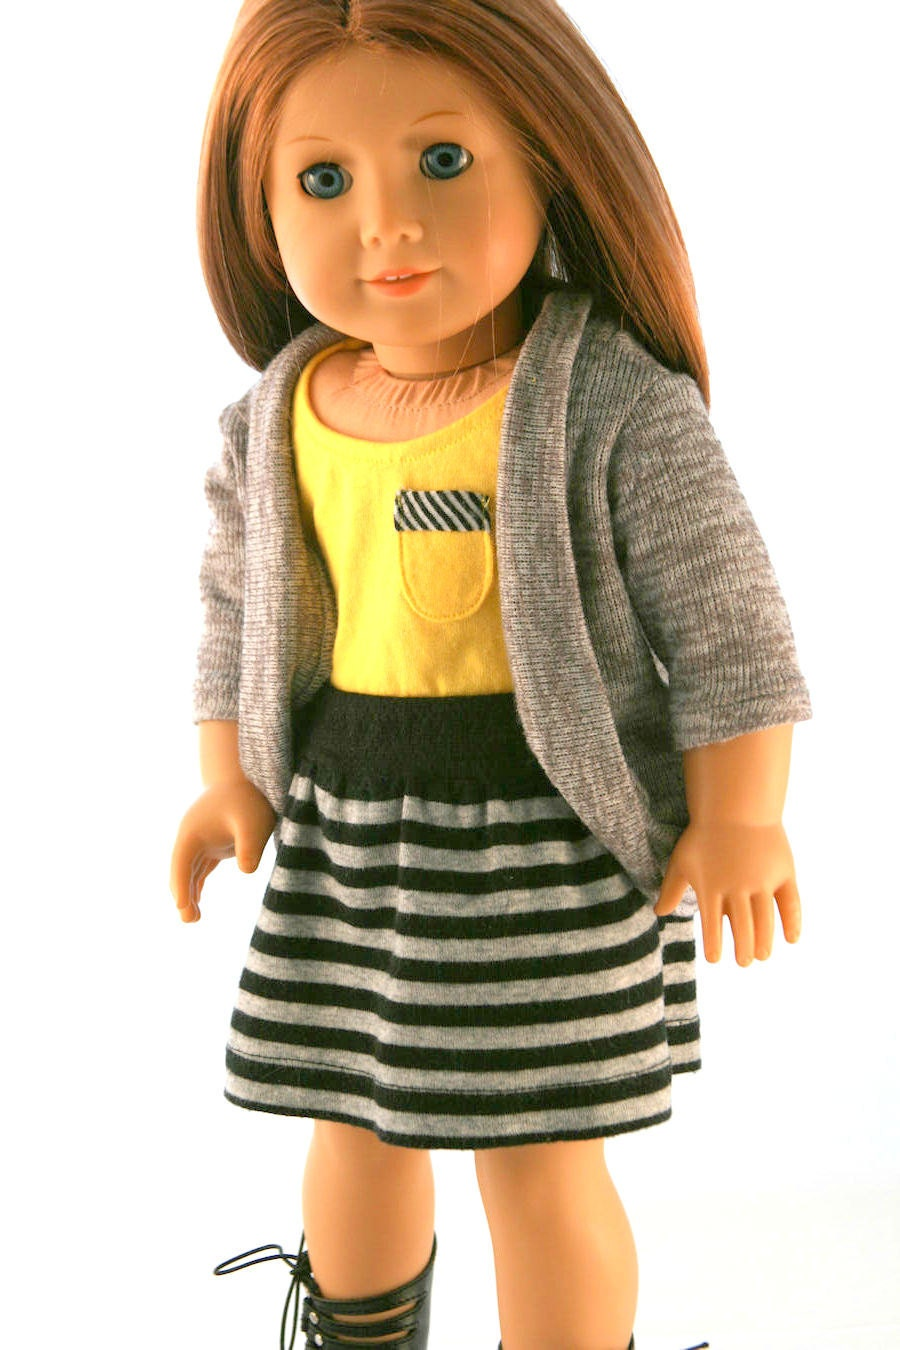 American Girl Doll Clothes - Yellow Tank with Pocket, Sweater Cardigan, and Striped Knit Skirt